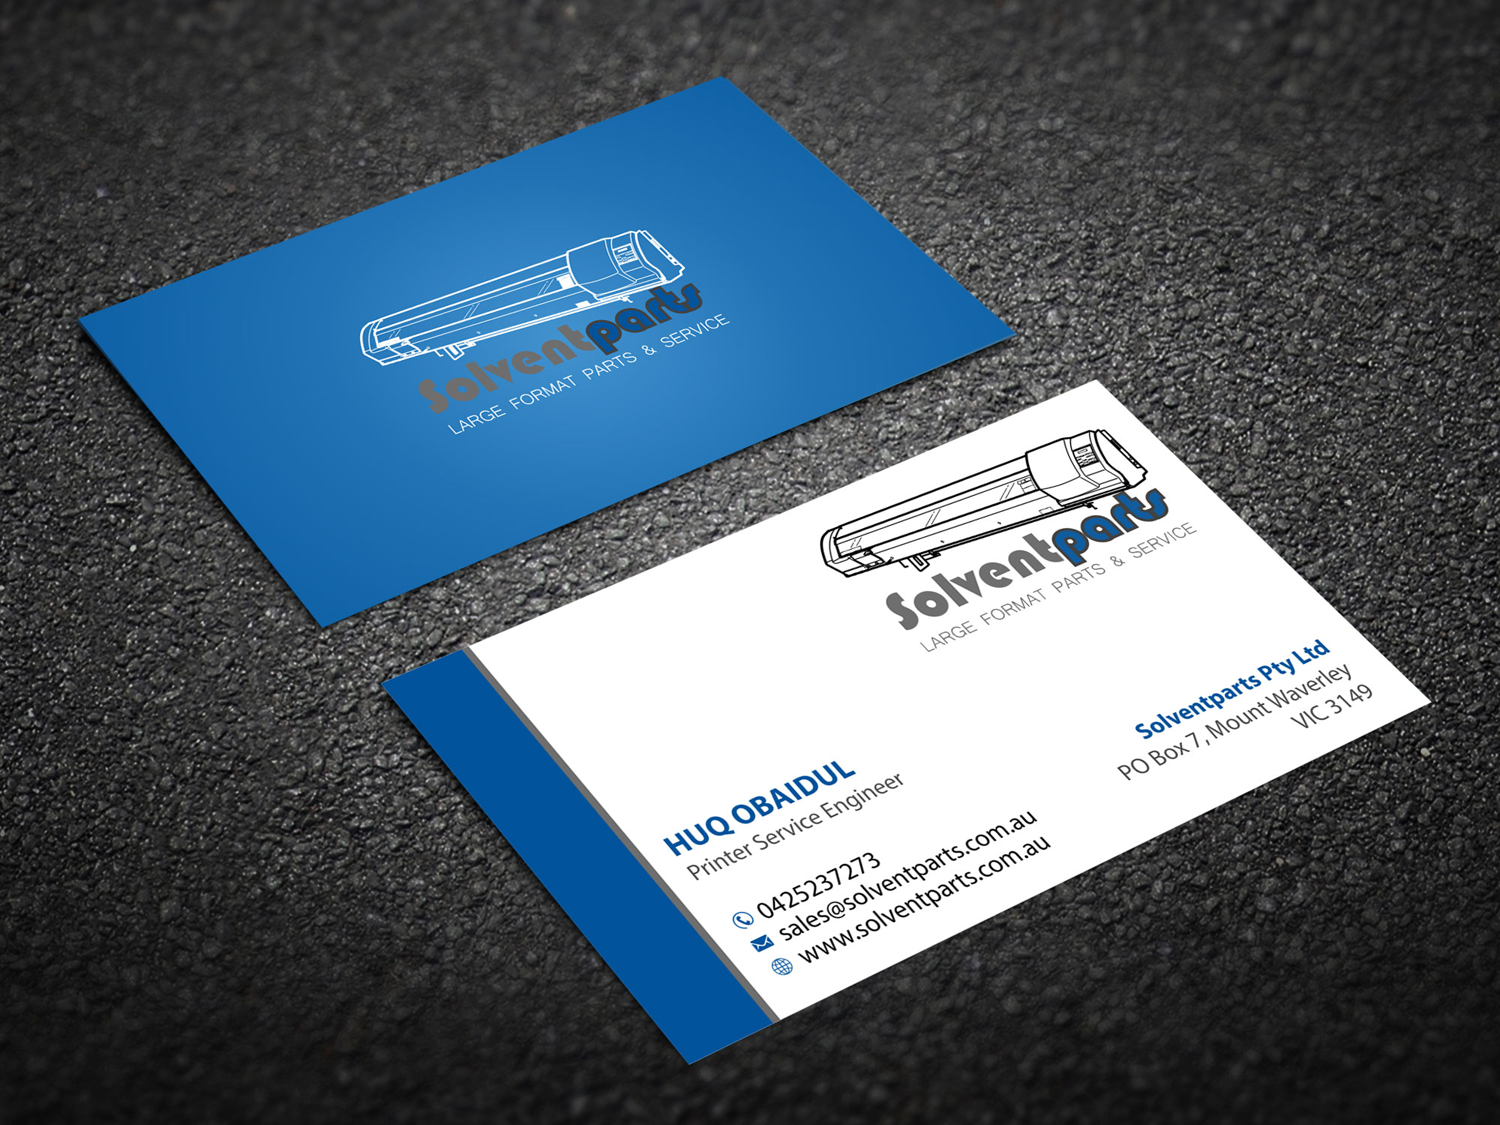 Personable conservative business business card design for business card design by madhuraminfotech for solventparts design 14719014 reheart Image collections